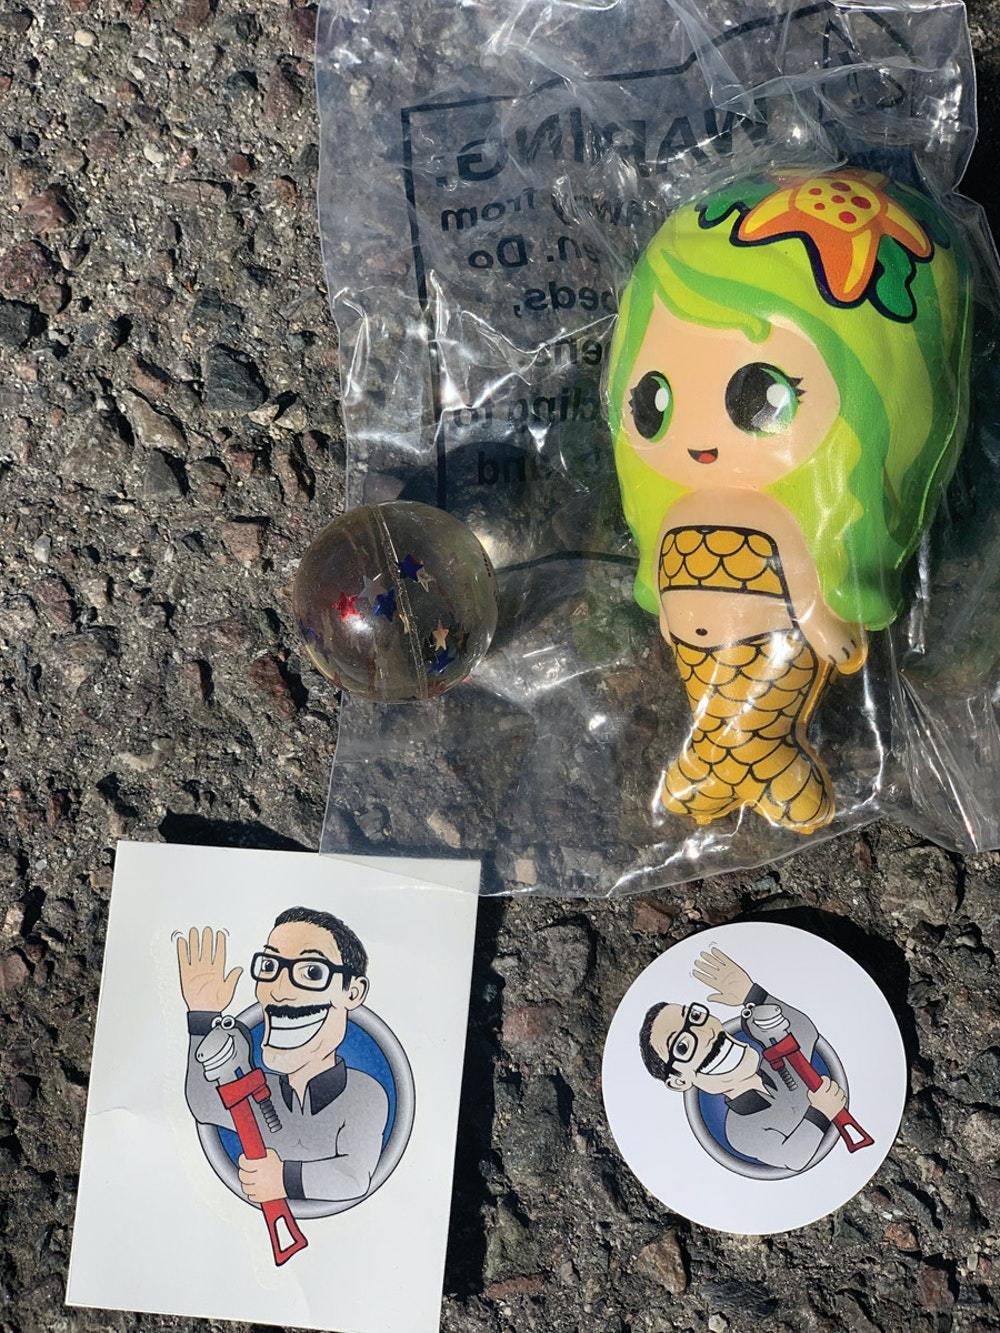 At Thompson Family Plumbing and Rooter in Hesperia, California, customers are left with a small bag full of goodies, such as a small toy, stickers and fake tattoos that the kids can put on. (Photo courtesy Thompson Family Plumbing and Rooter)